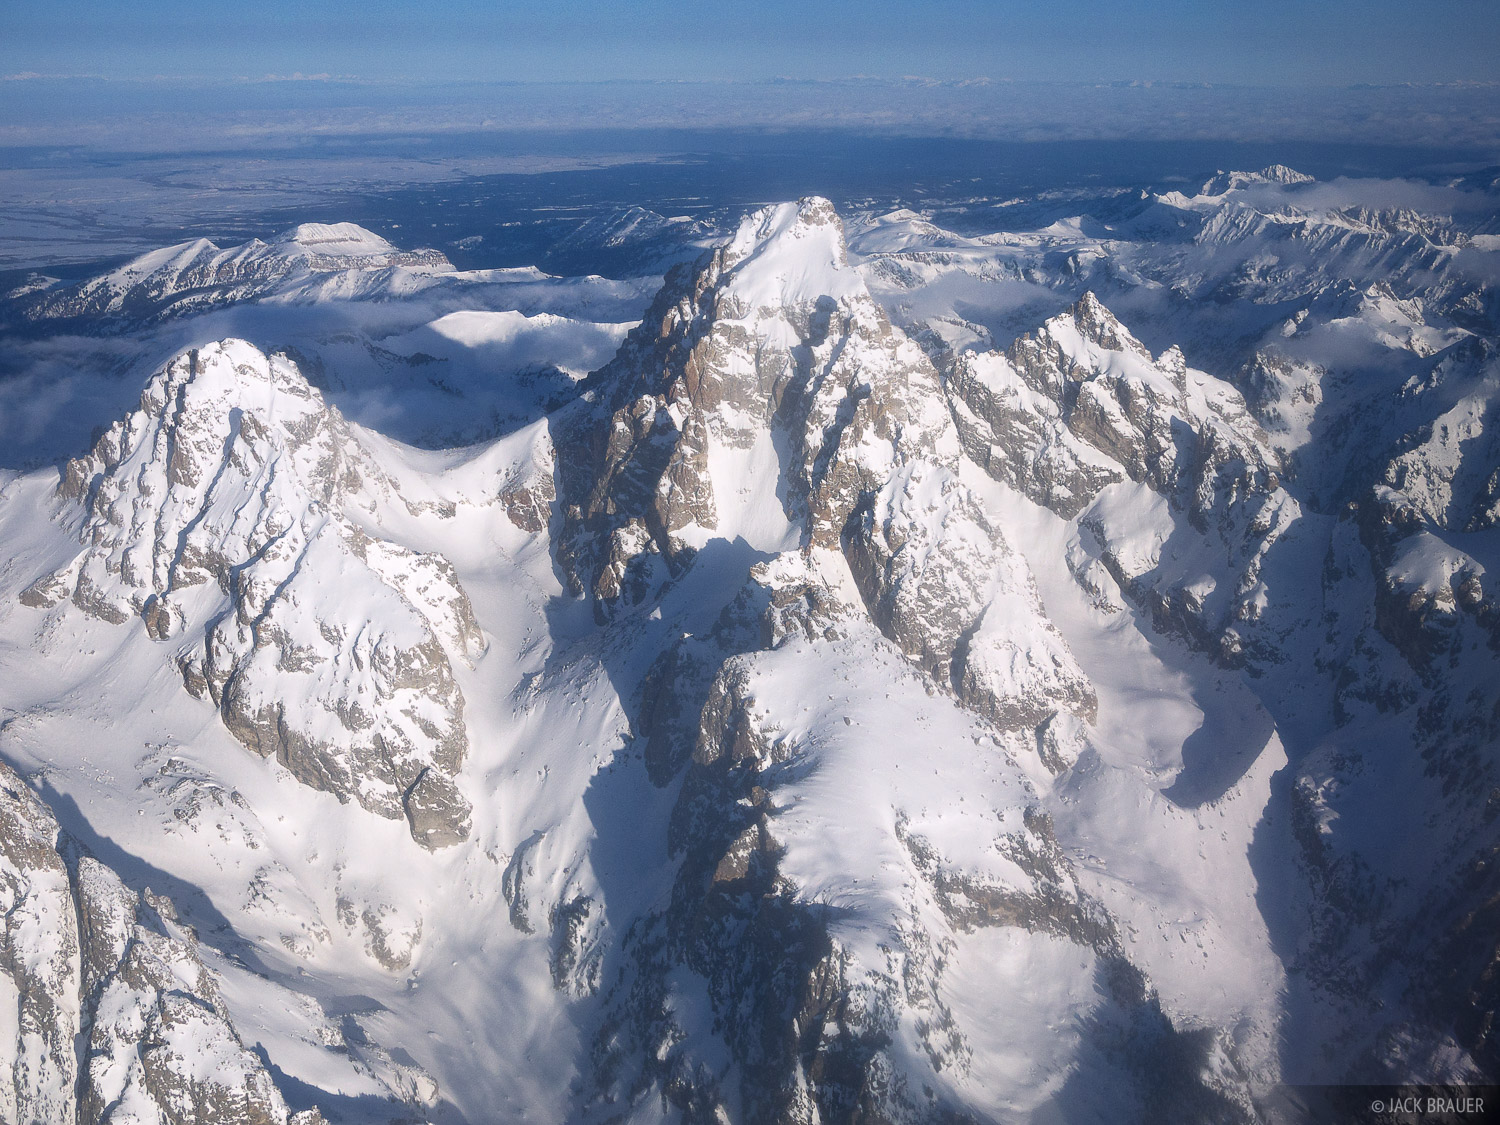 Grand Teton, aerial, Middle Teton, Mount Owen, Garnet Canyon, Glacier Gulch, Tetons, Wyoming, Grand Teton National Park, photo